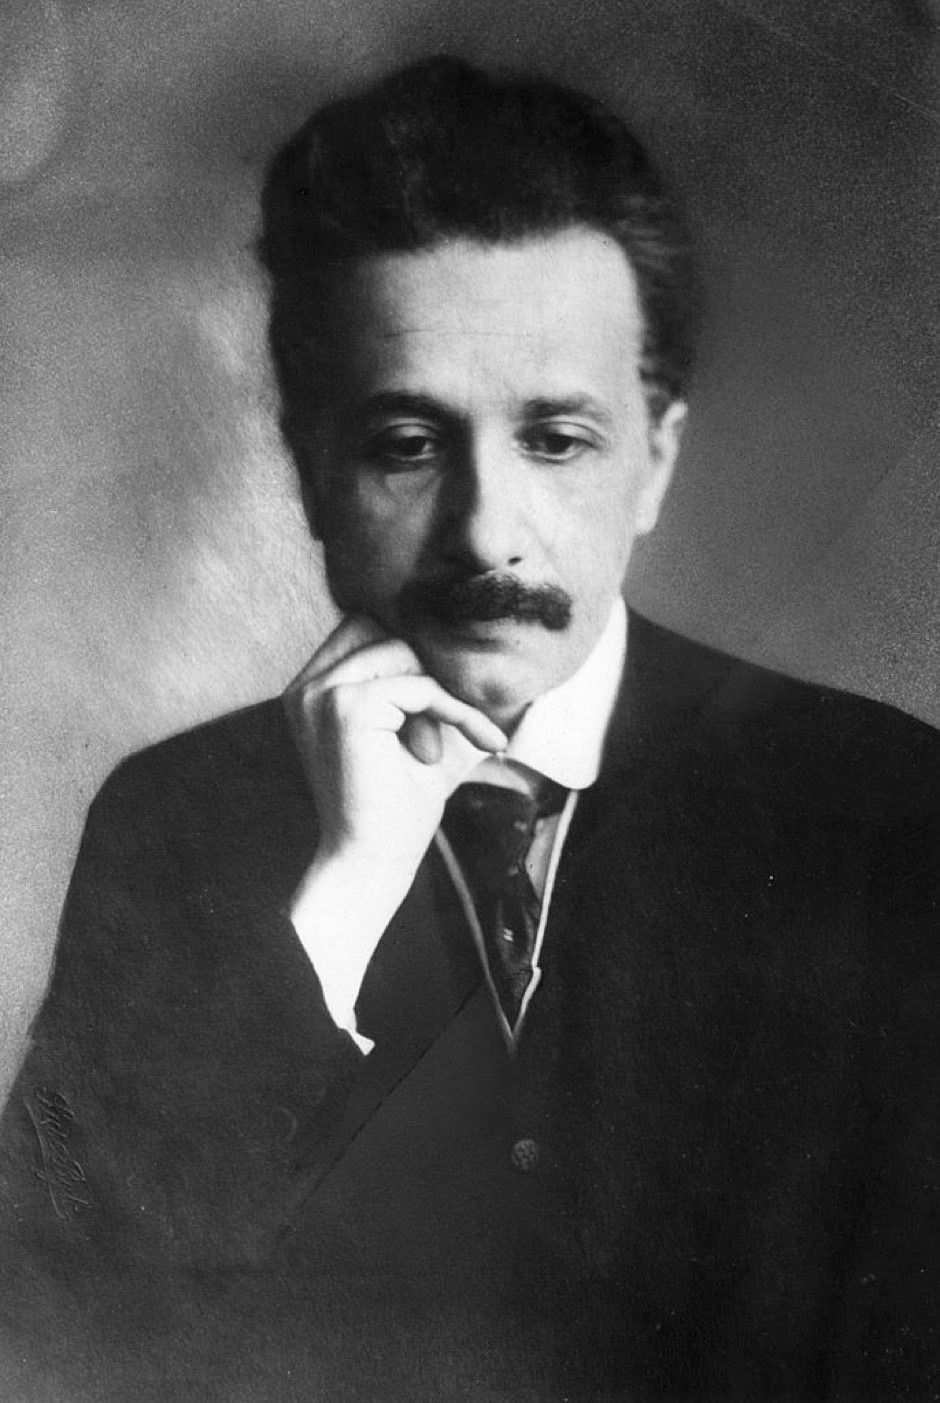 Albert Einstein (1879 - 1955), the German-Swiss-American mathematical atomic physicist and Nobel prizewinner, seen early in his career in a thoughtful pose. (Photo by Hulton Archive/Getty Images)